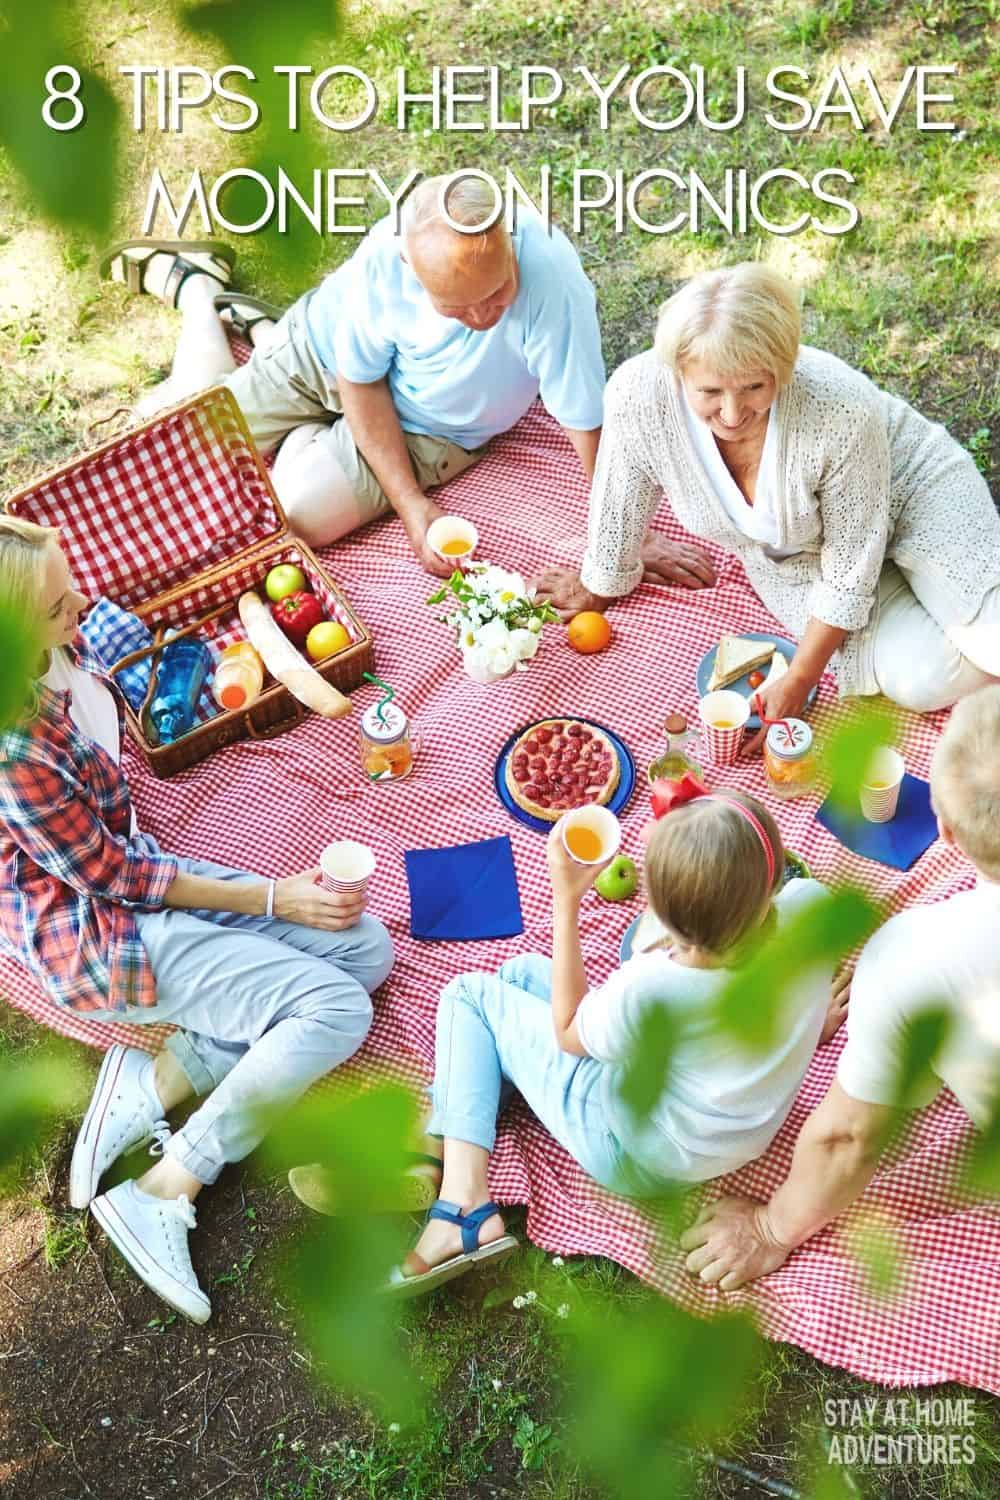 If you are on a budget this summer, you need to read these 8 never thought of tips to help you save money on picnics. These will help you enjoy wonderful picnics without busting your budget. via @mystayathome